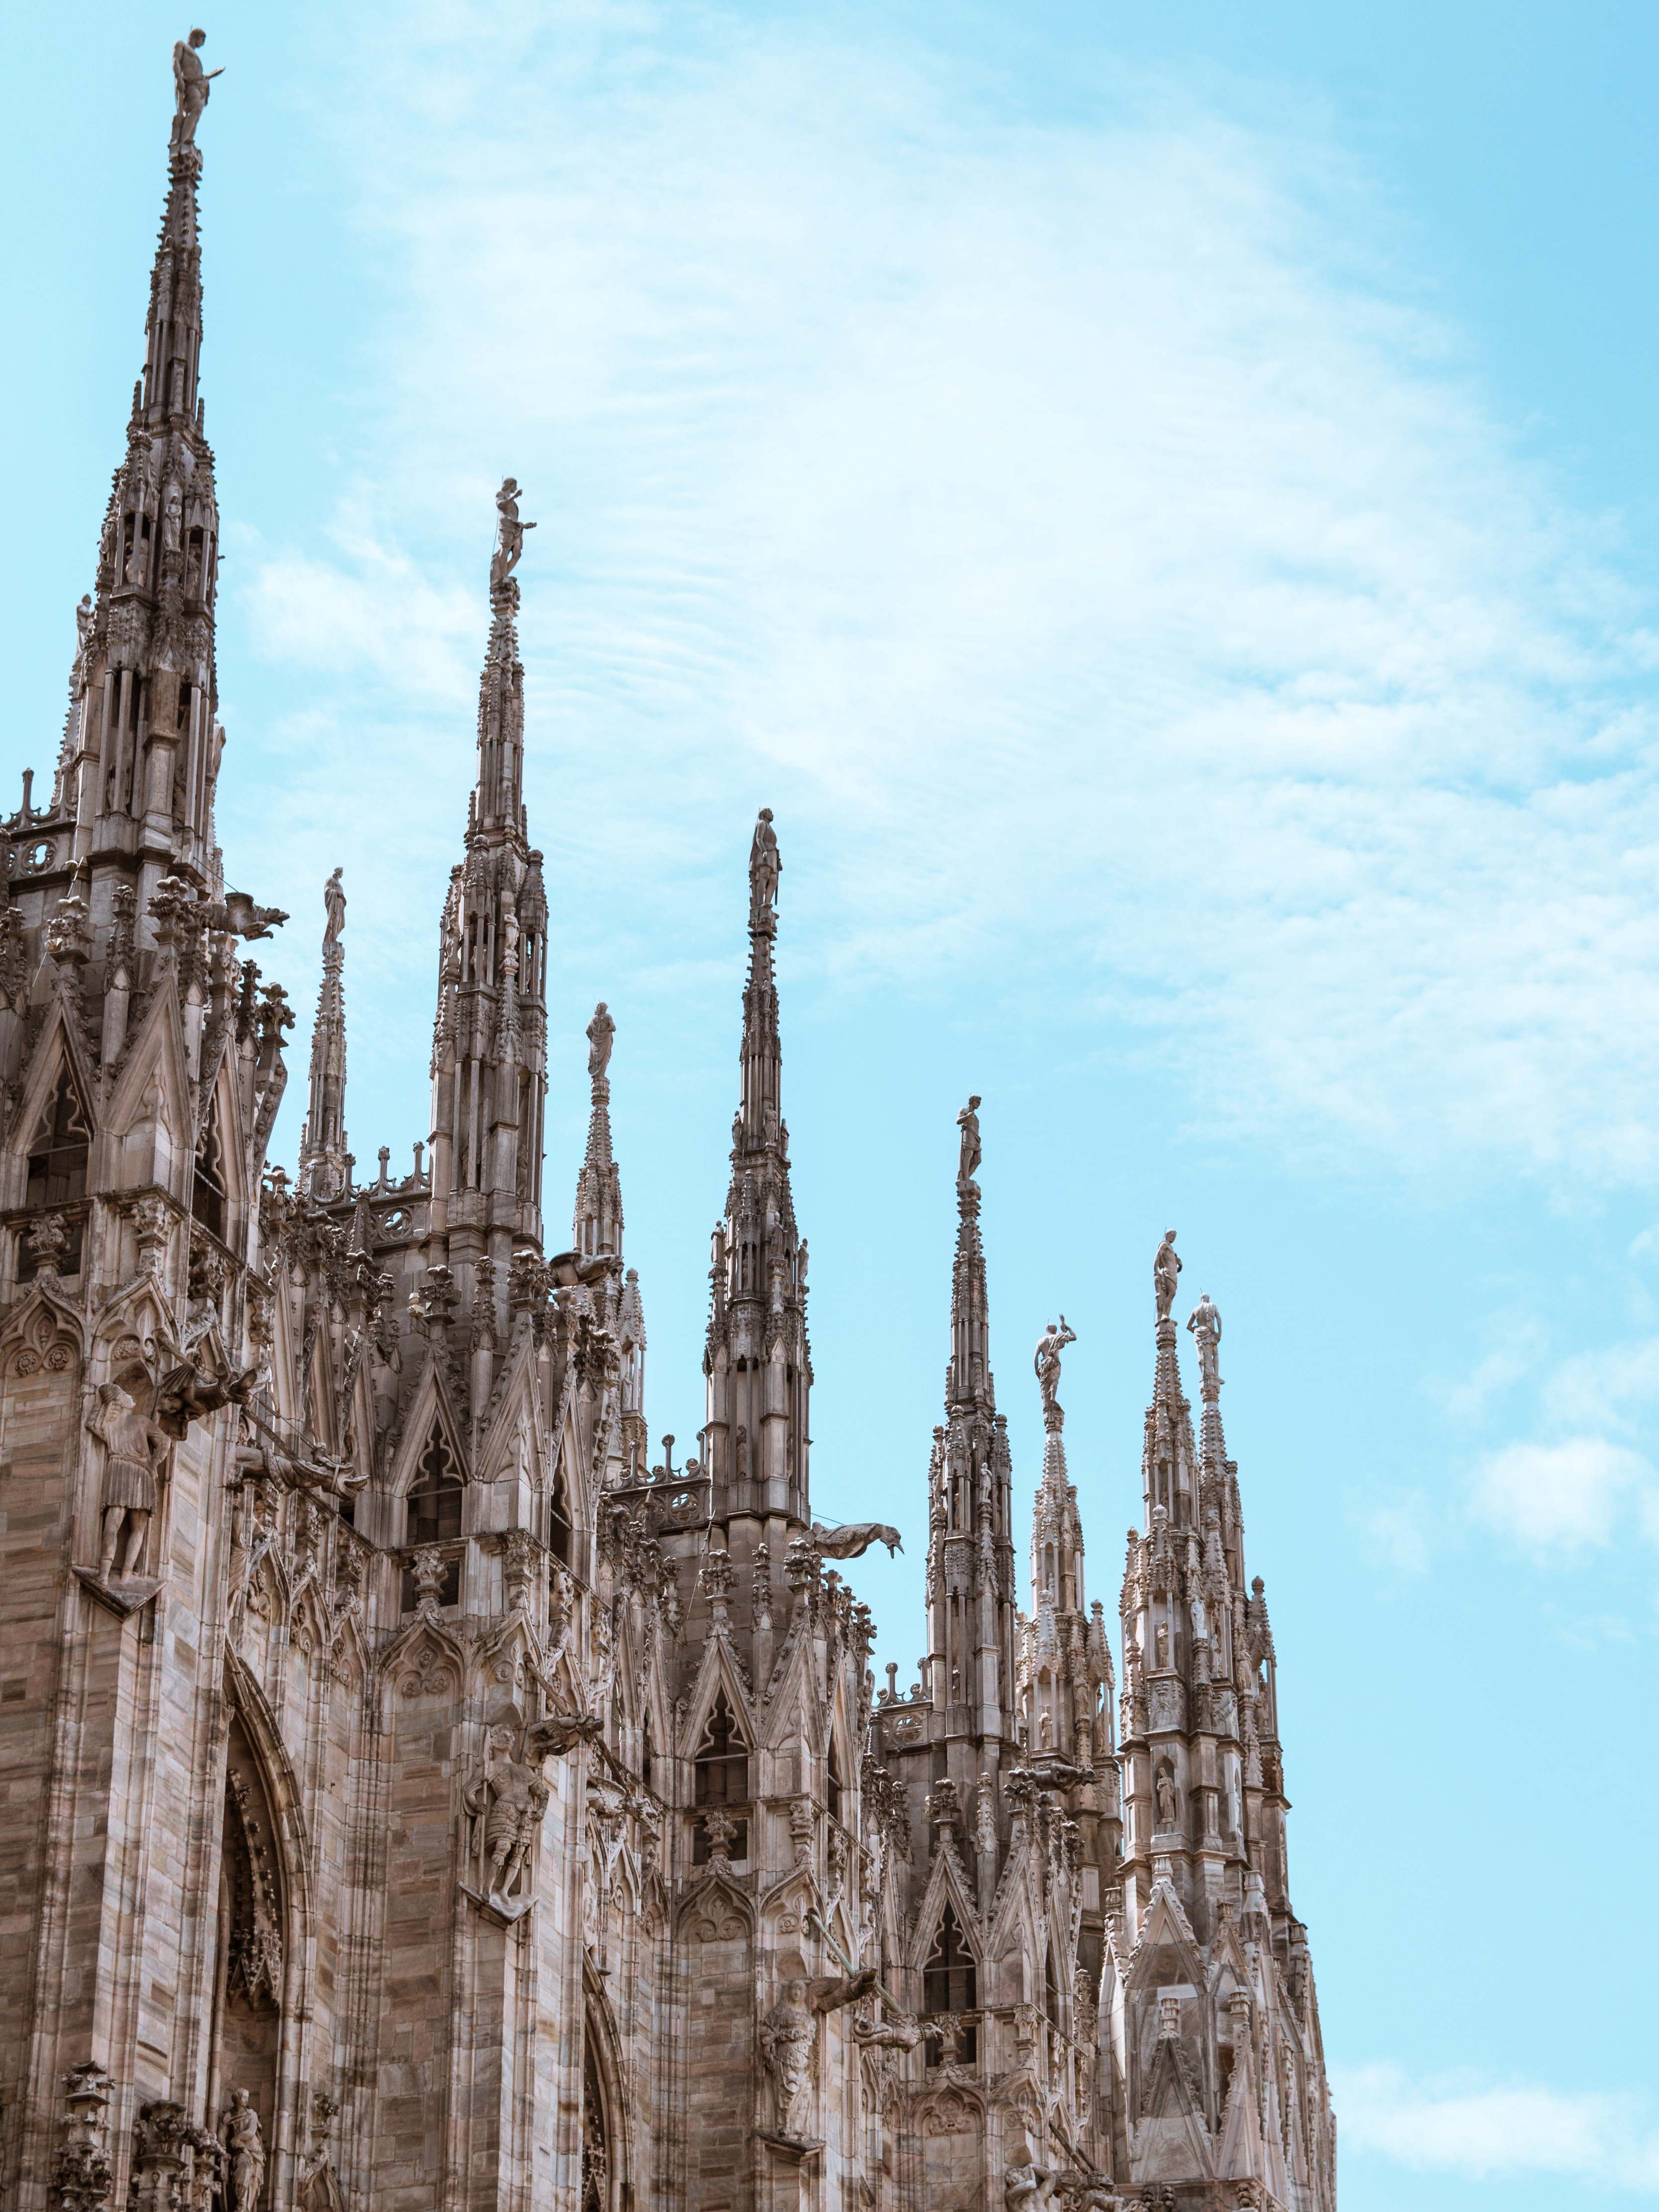 Gothic church with many spires and statues on top of each